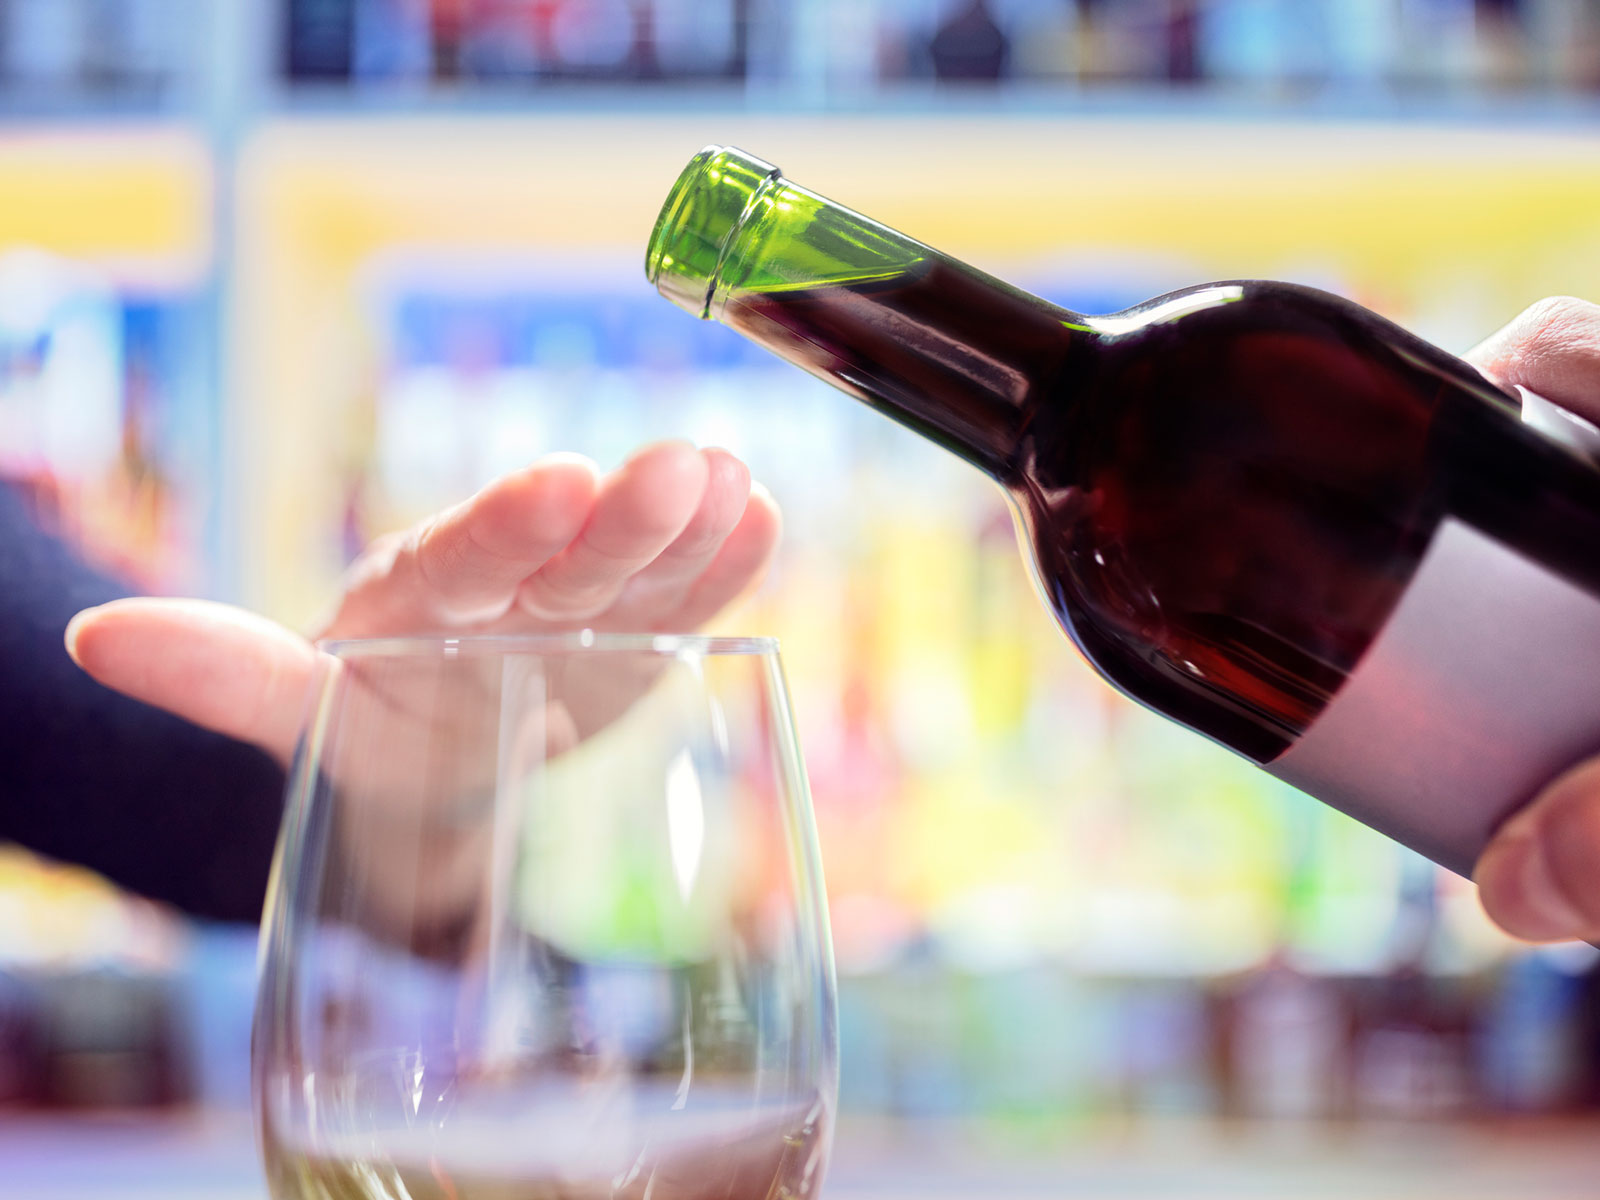 Adults Under 35 Are Behind a 'Marked Decline' in Wine Consumption